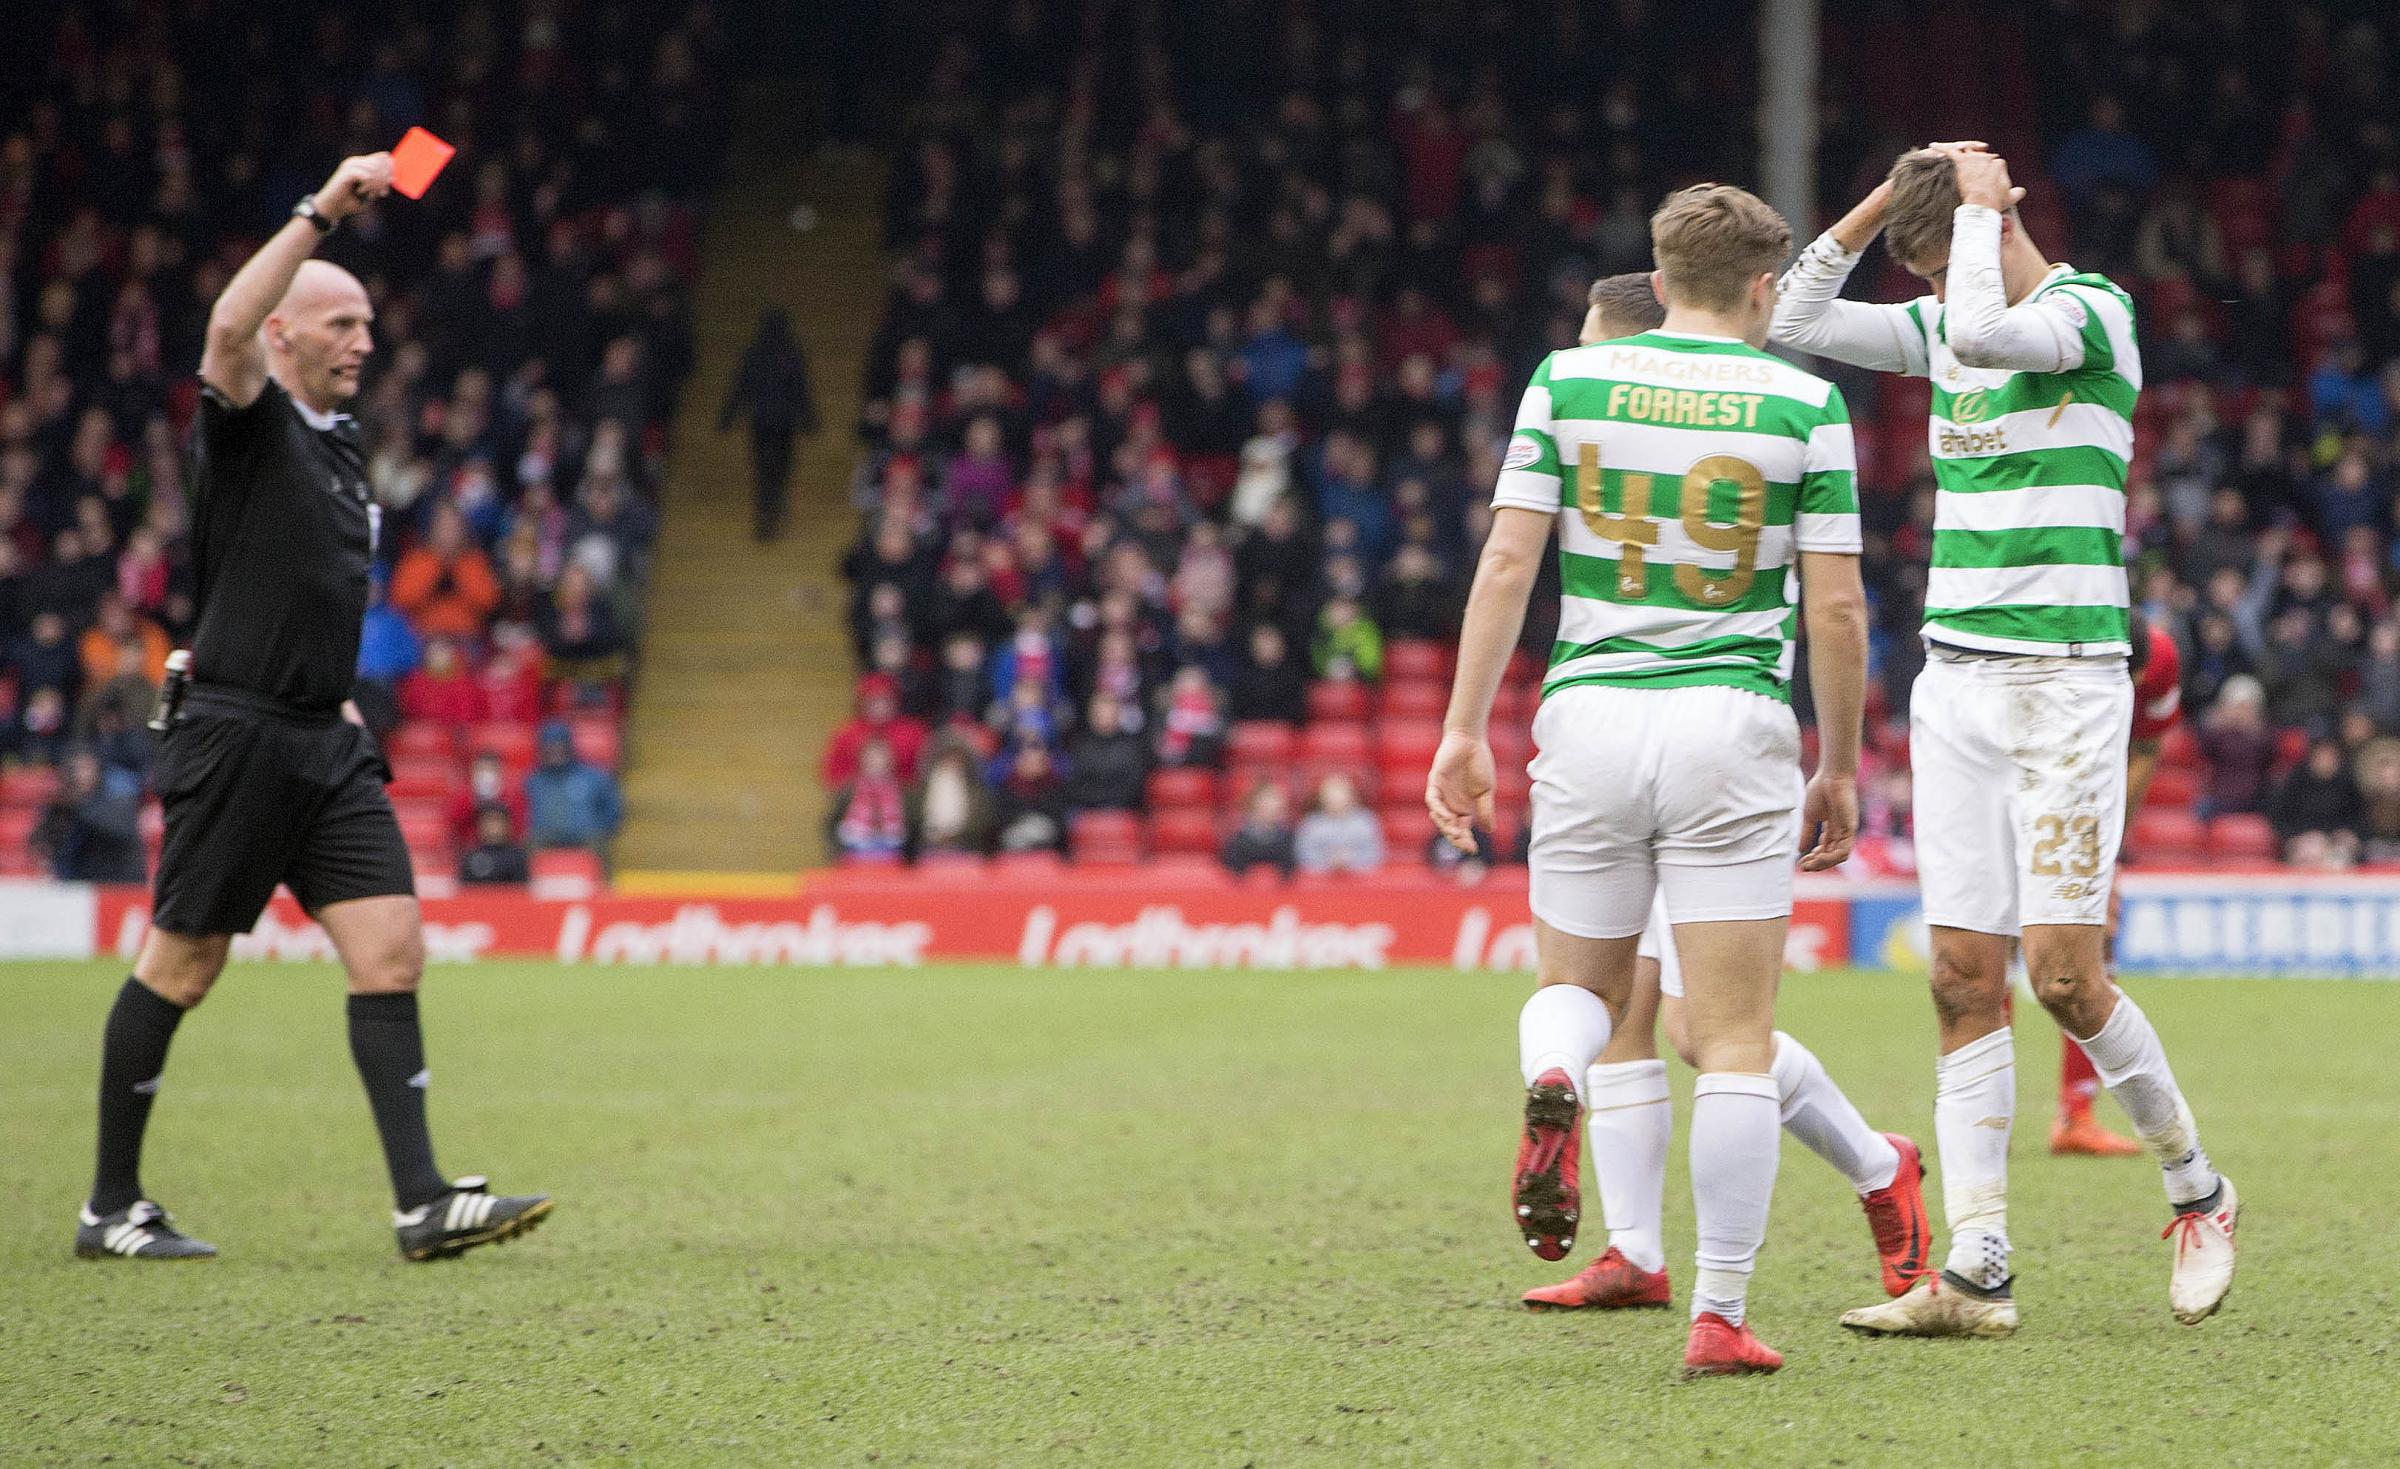 Mikael Lustig's suspension could mean he misses the game against Rangers on Match 11. (Pic: Jeff Holmes/PA wire)